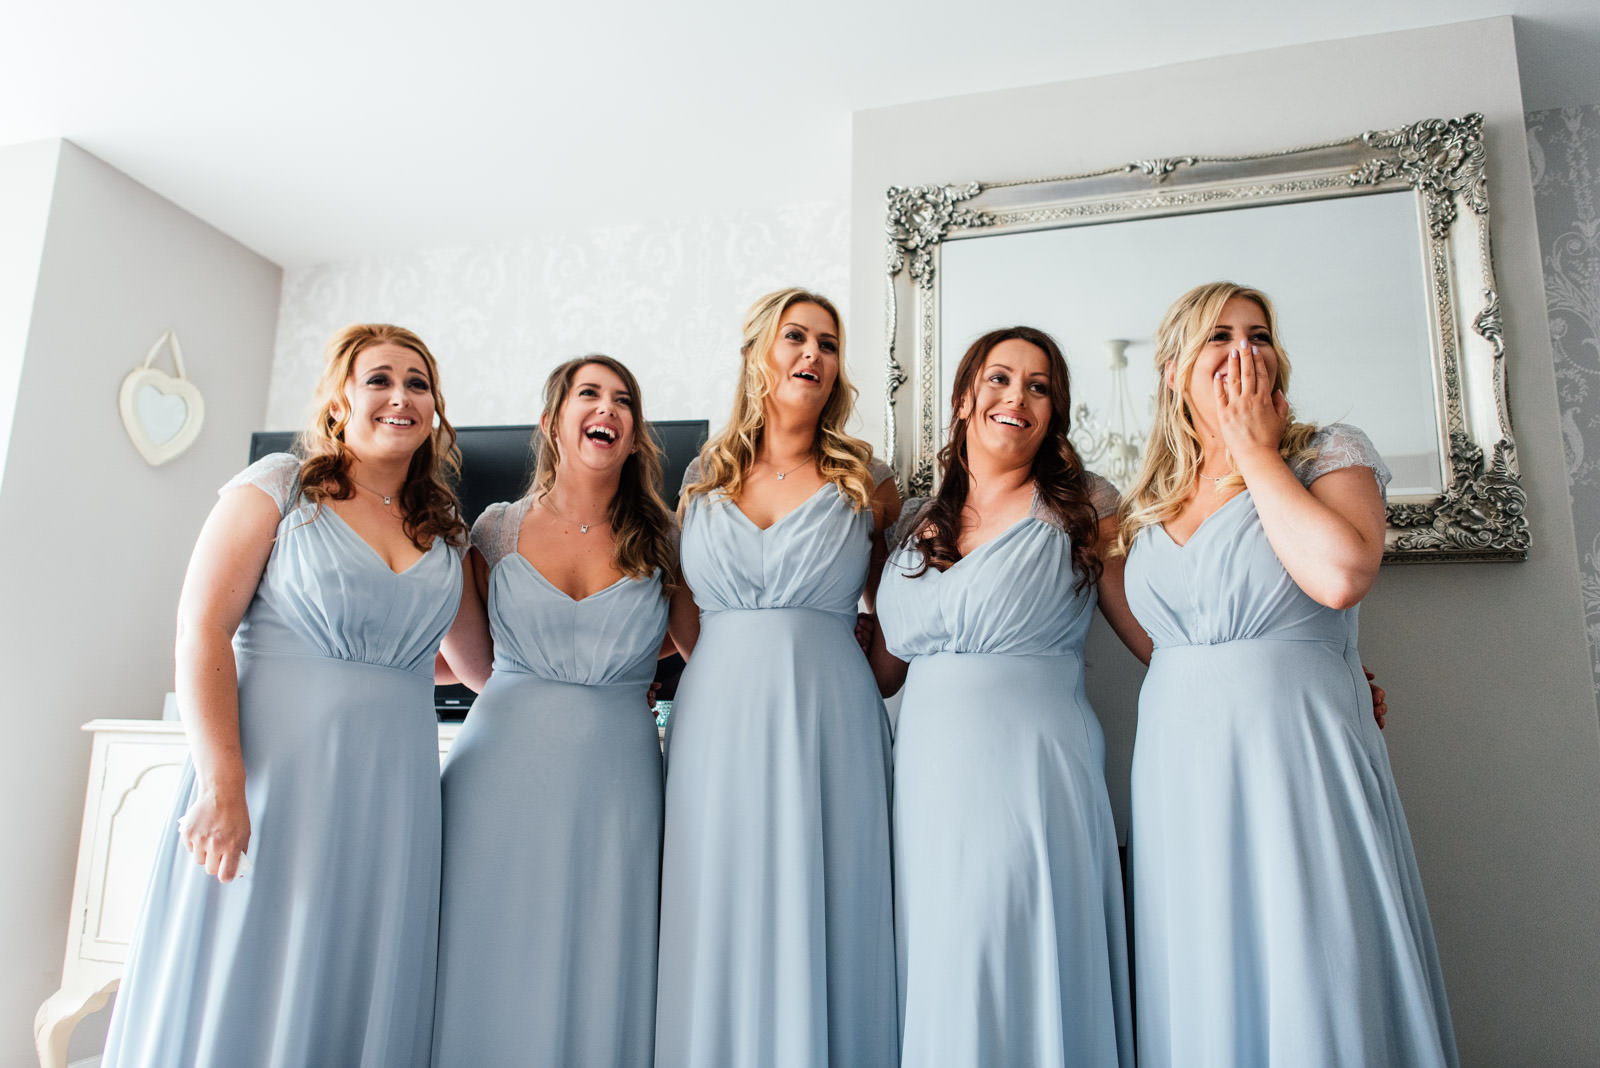 the big reveal to the bridesmaids